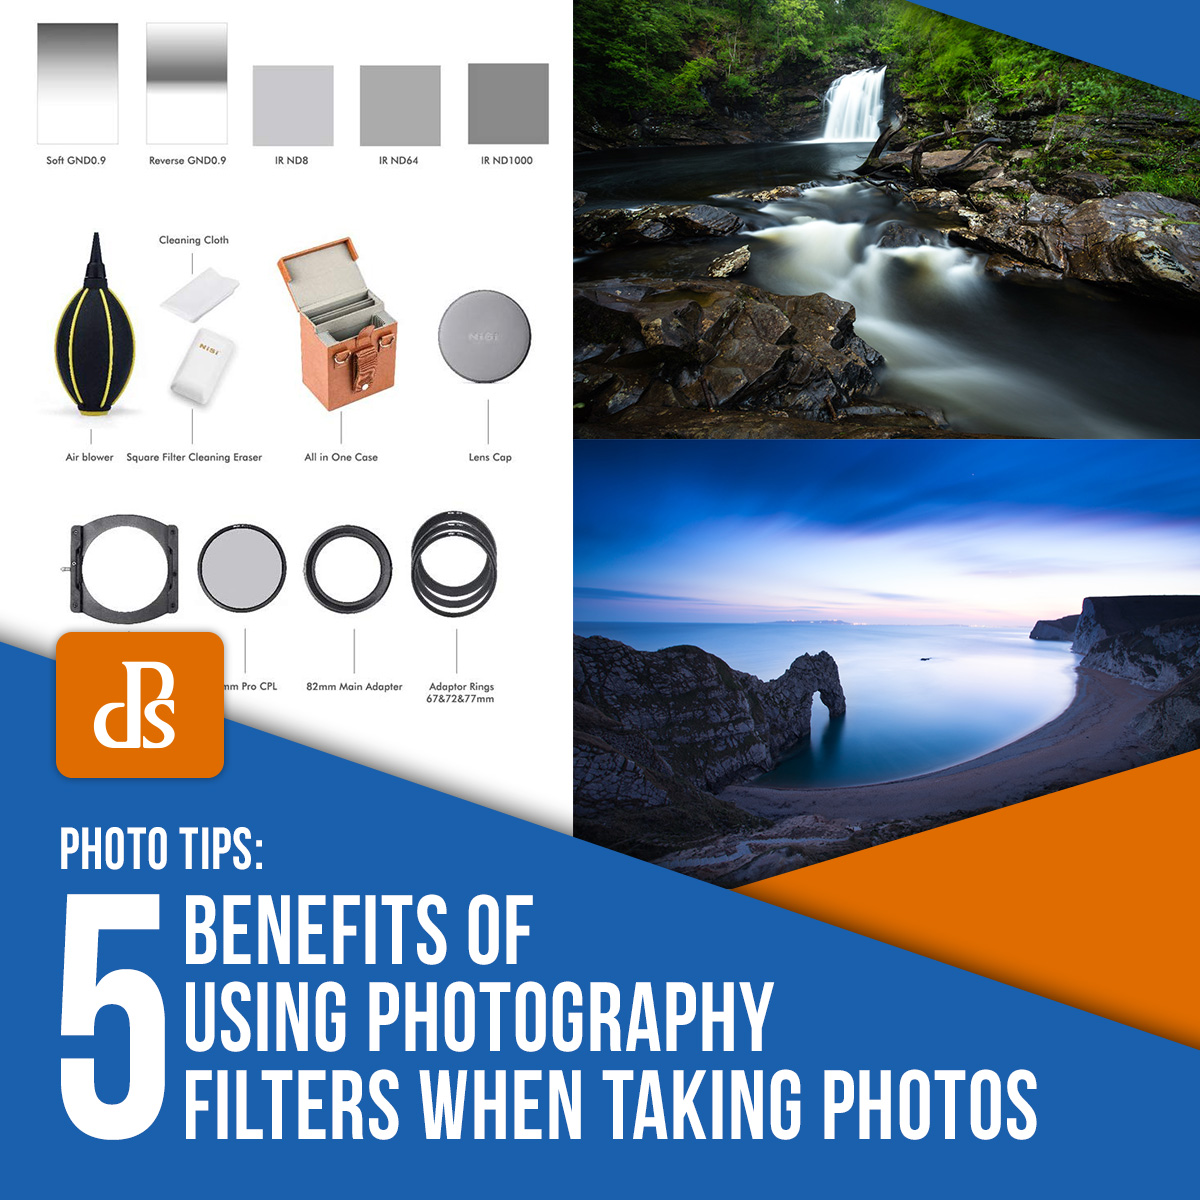 benefits-of-using-photography-filters